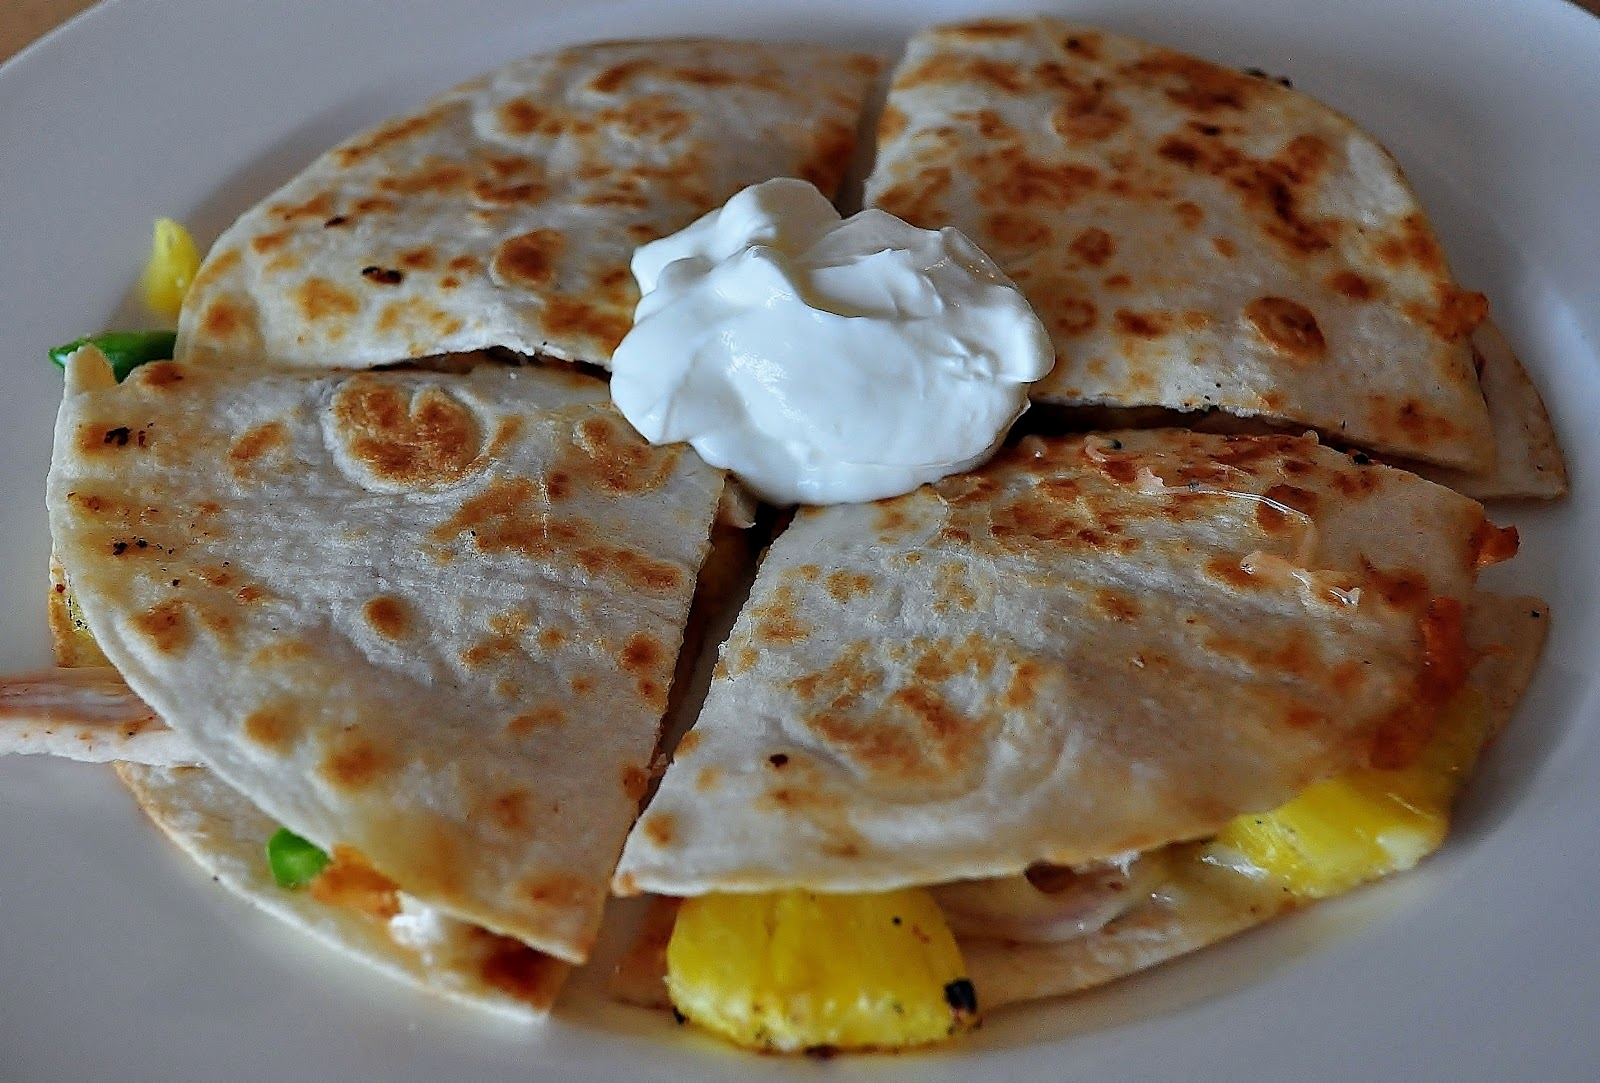 My Tiny Oven: Grilled Chicken and Pineapple Quesadilla